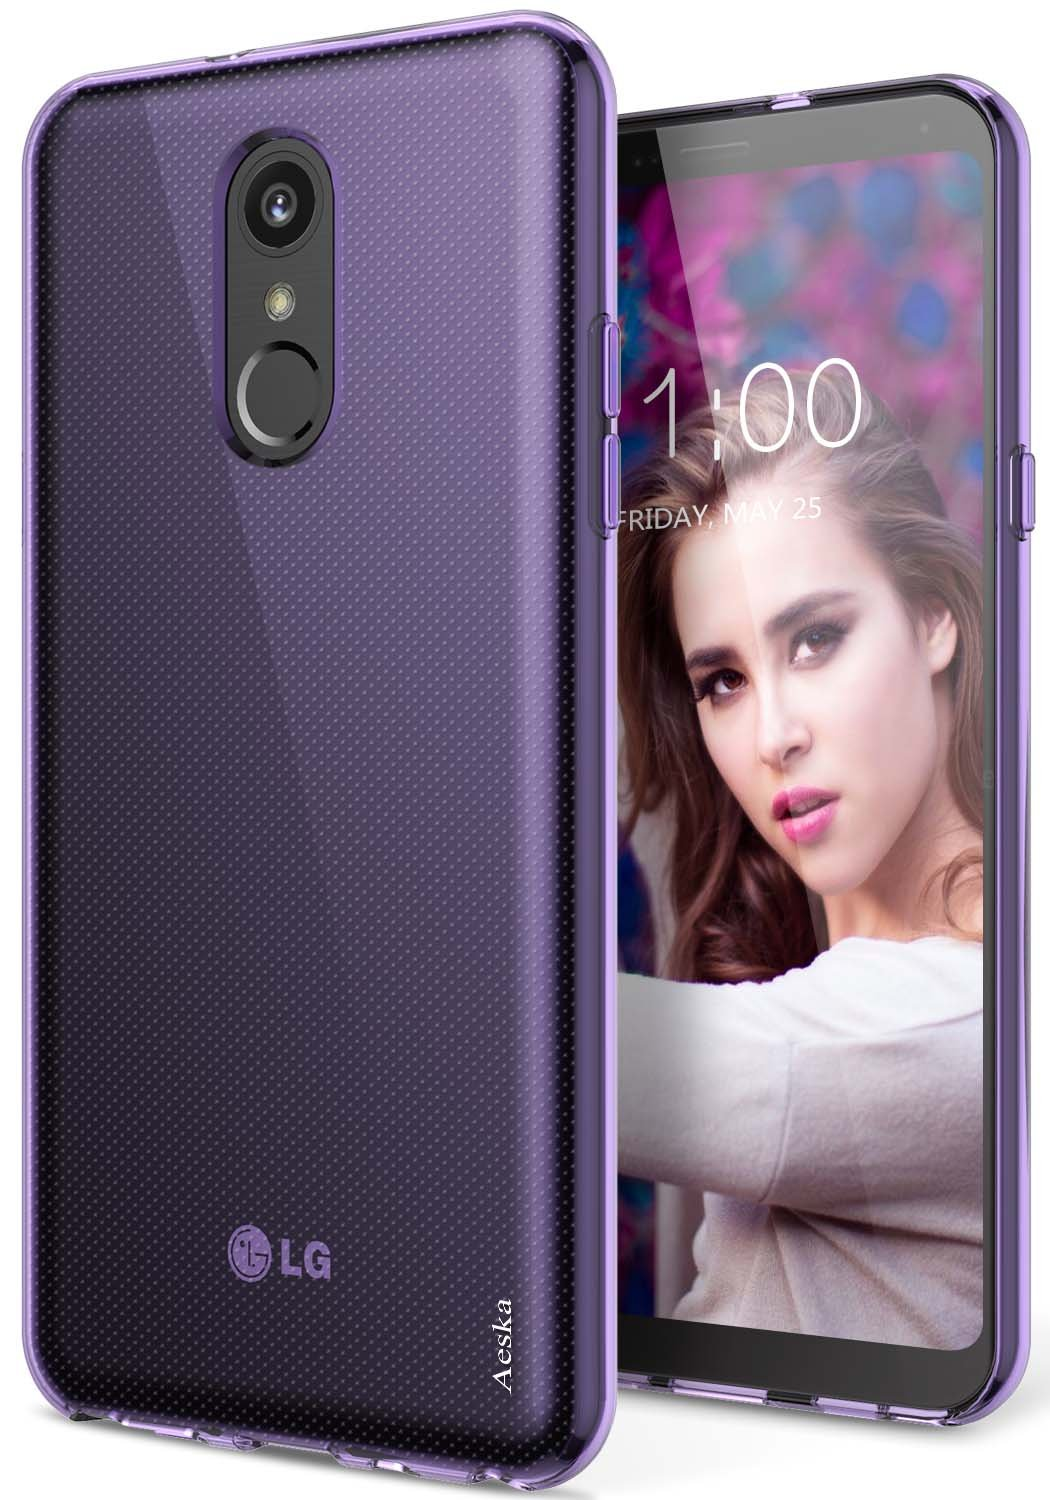 LG Stylo 4 Case, LG Q Stylus Case, Aeska Ultra [Slim Thin] Flexible TPU Soft Skin Silicone Protective Case Cover for LG Stylo 4 / LG Q Stylus (Purple)